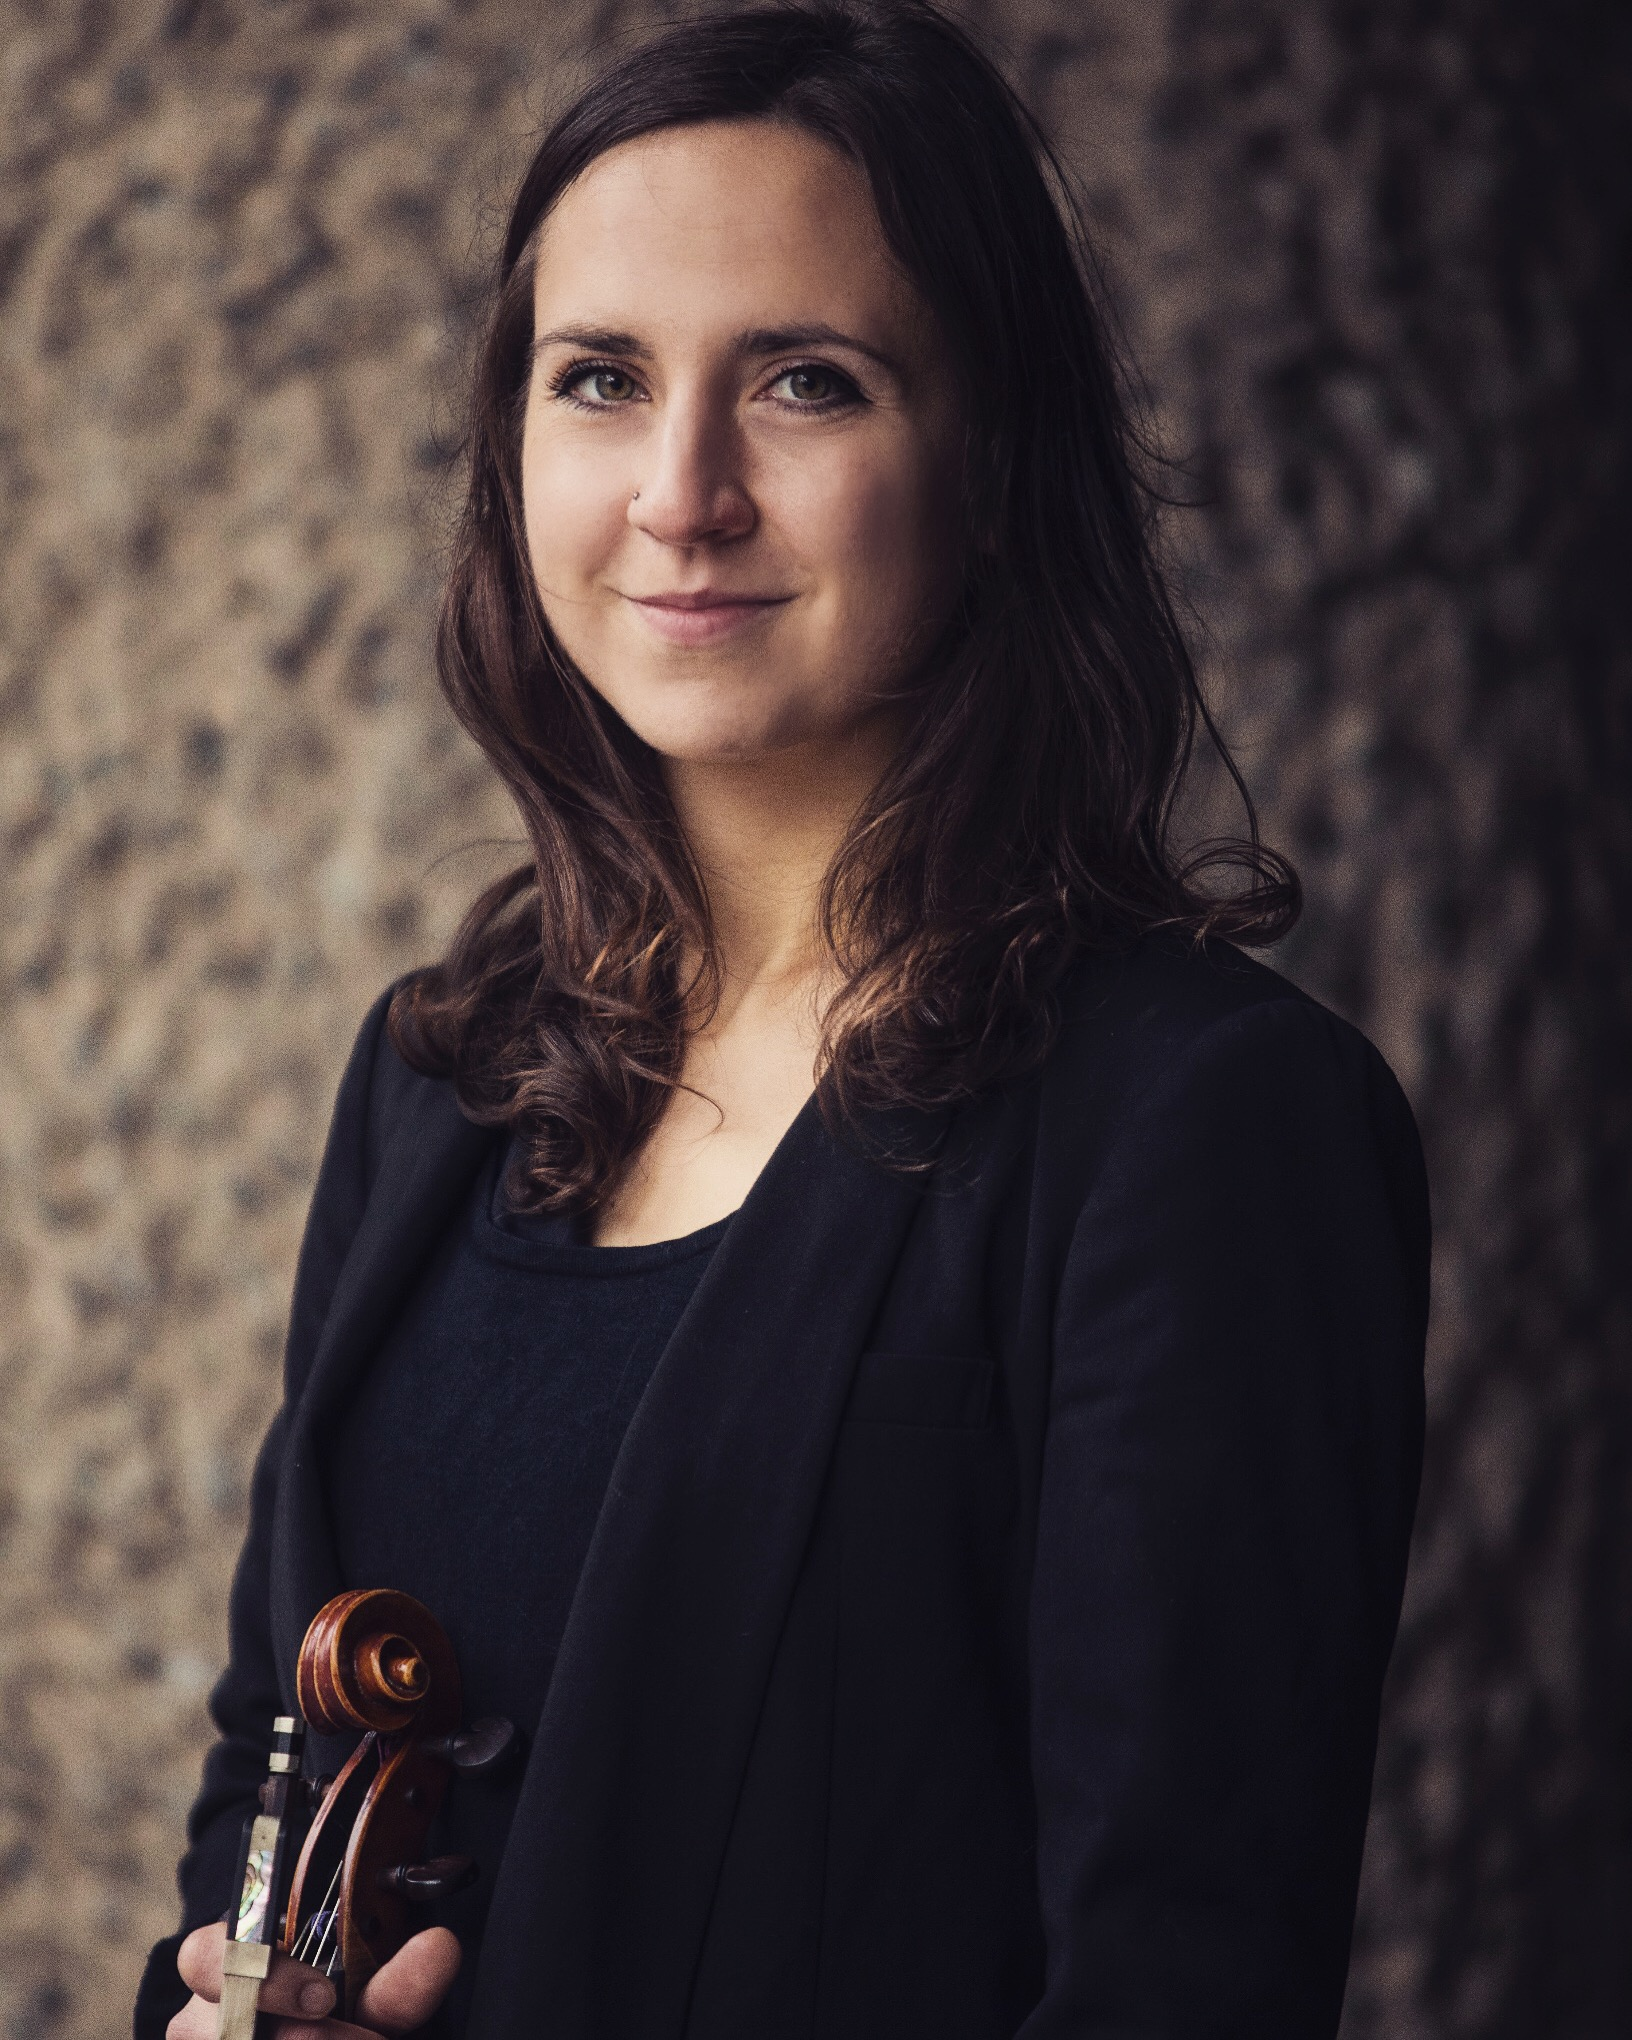 Luba Tunnicliffe - ViolaLubaTunnicliffe has performed solo recitals at the Royal Festival Hall and St John's Smith Square, and made her debut as concerto soloist with the Philharmonia Orchestra in June 2016. She won the Guildhall's Max and Peggy Morgan Award with the Bartok Viola Concerto and was viola soloist in Mozart's Sinfonia Concertante with Alexander Janiczek and the Guildhall Chamber Orchestra in Milton Court Concert Hall, Barbican. She is a recipient of the Philip and Dorothy Green Award for Young Artists through Making Music UK.She studied at the Guildhall School of Music and Drama with David Takeno and Pavlo Beznosiuk, and the Hochschule für Musik Hanns Eisler, Berlin with Simone Jandl. Previously, she studied with Jacky Woods at the Junior Royal Academy of Music.Lubaperforms regularly throughout the UK with her two award-winning chamber groups - the Pelléas Ensemble and the Ruisi String Quartet. They have both received awards from the Royal Philharmonic Society and the Tunnell Trust, and have appeared on BBC Radio 3's 'In Tune'.